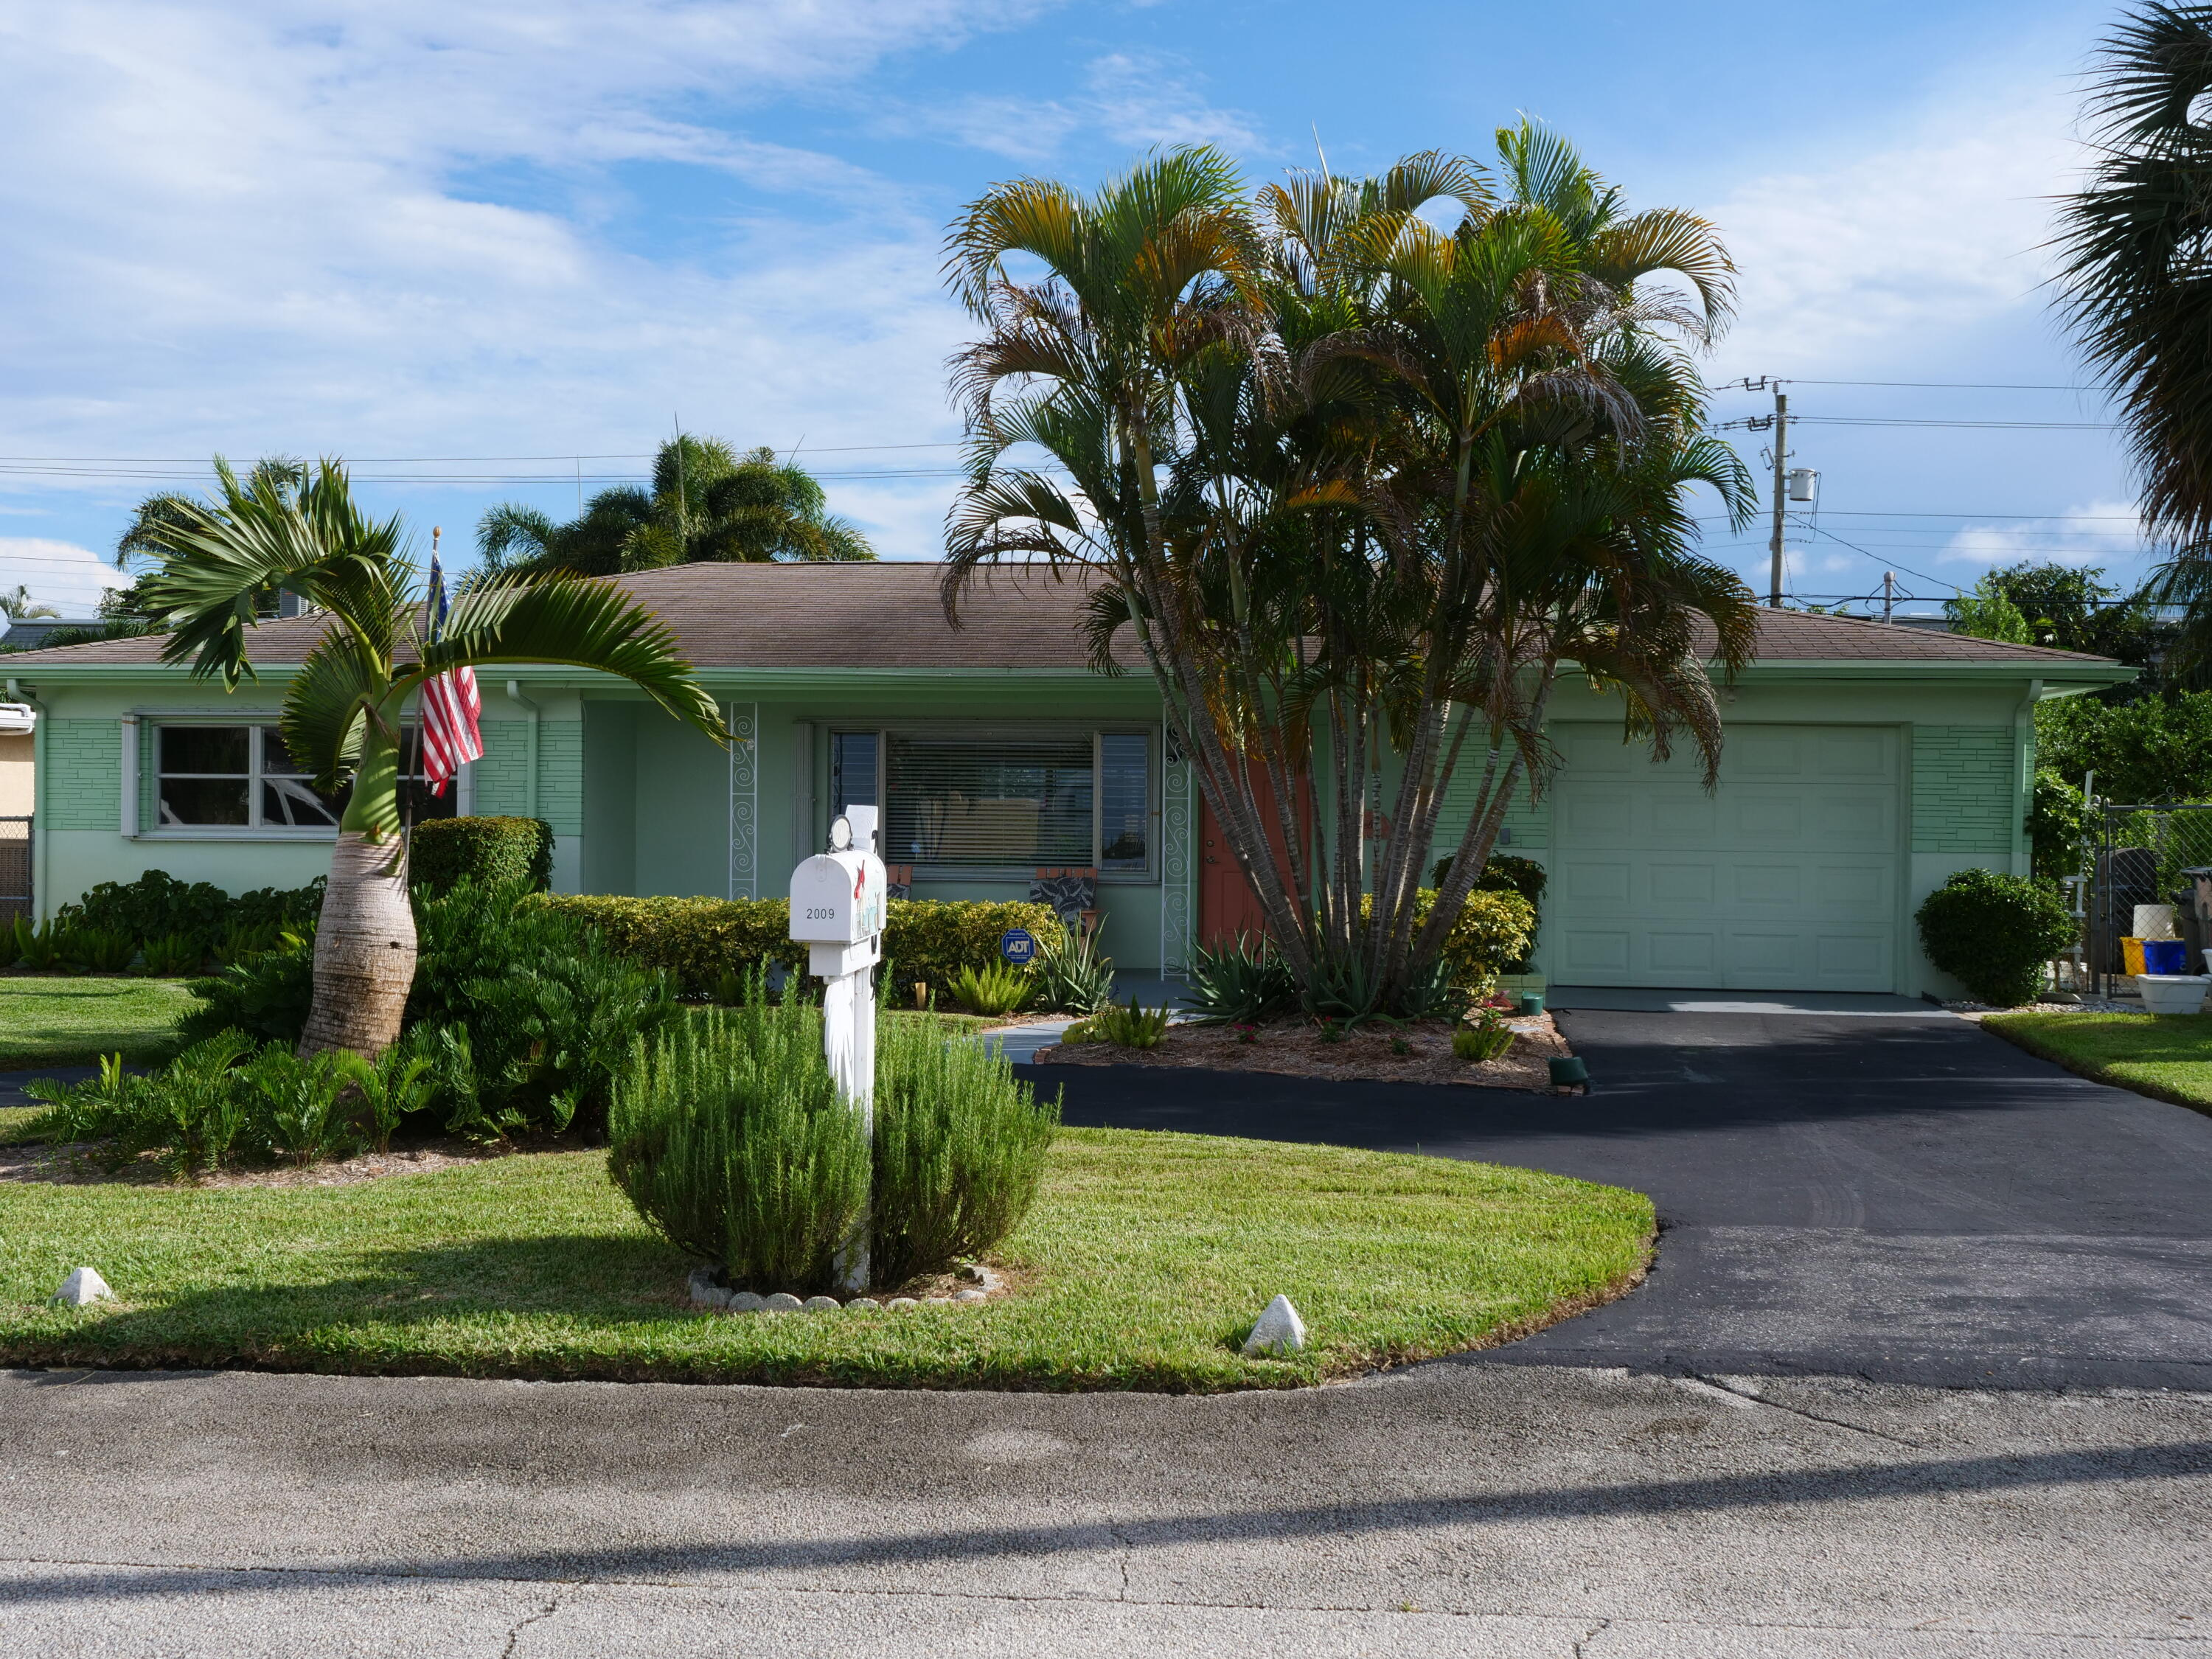 Home for sale in HUB PROPERTIES Lake Worth Florida